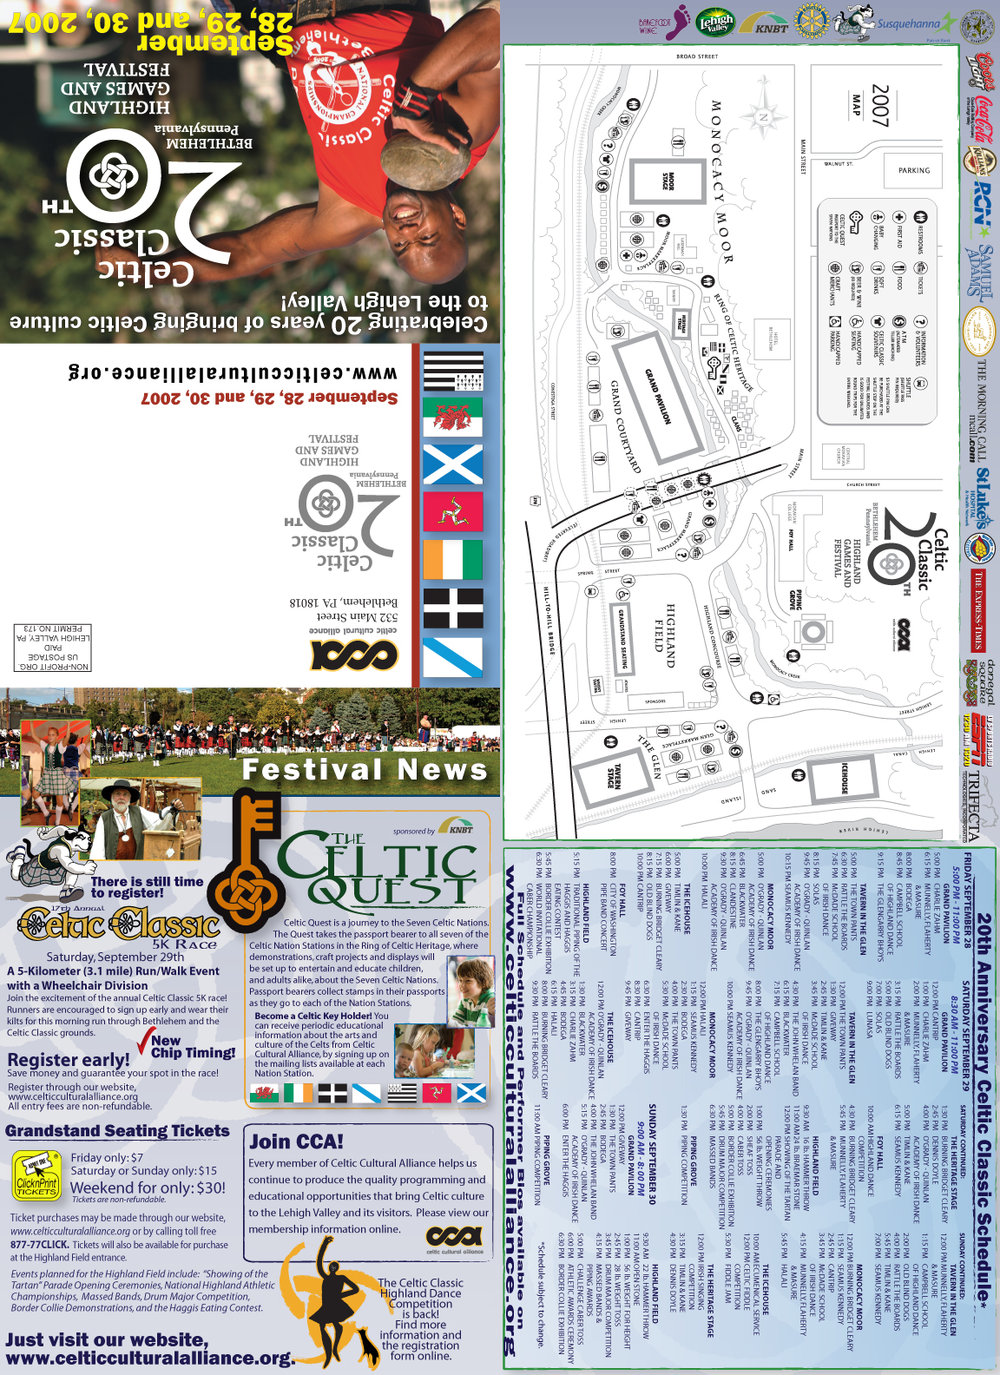 2007 CELTIC CLASSIC MAILER + FESTIVAL HANDOUT  • 12.5 x 17.6  MAILER + POSTER  CLIENT: Celtic Cultural Alliance PLACEMENT: Piece was both mailed out to Celtic Classic's 10,000+ mailing list and handed out to the record amount of  visitors (300,000 +) of the 20th Anniversary Celtic Classic in 2007.